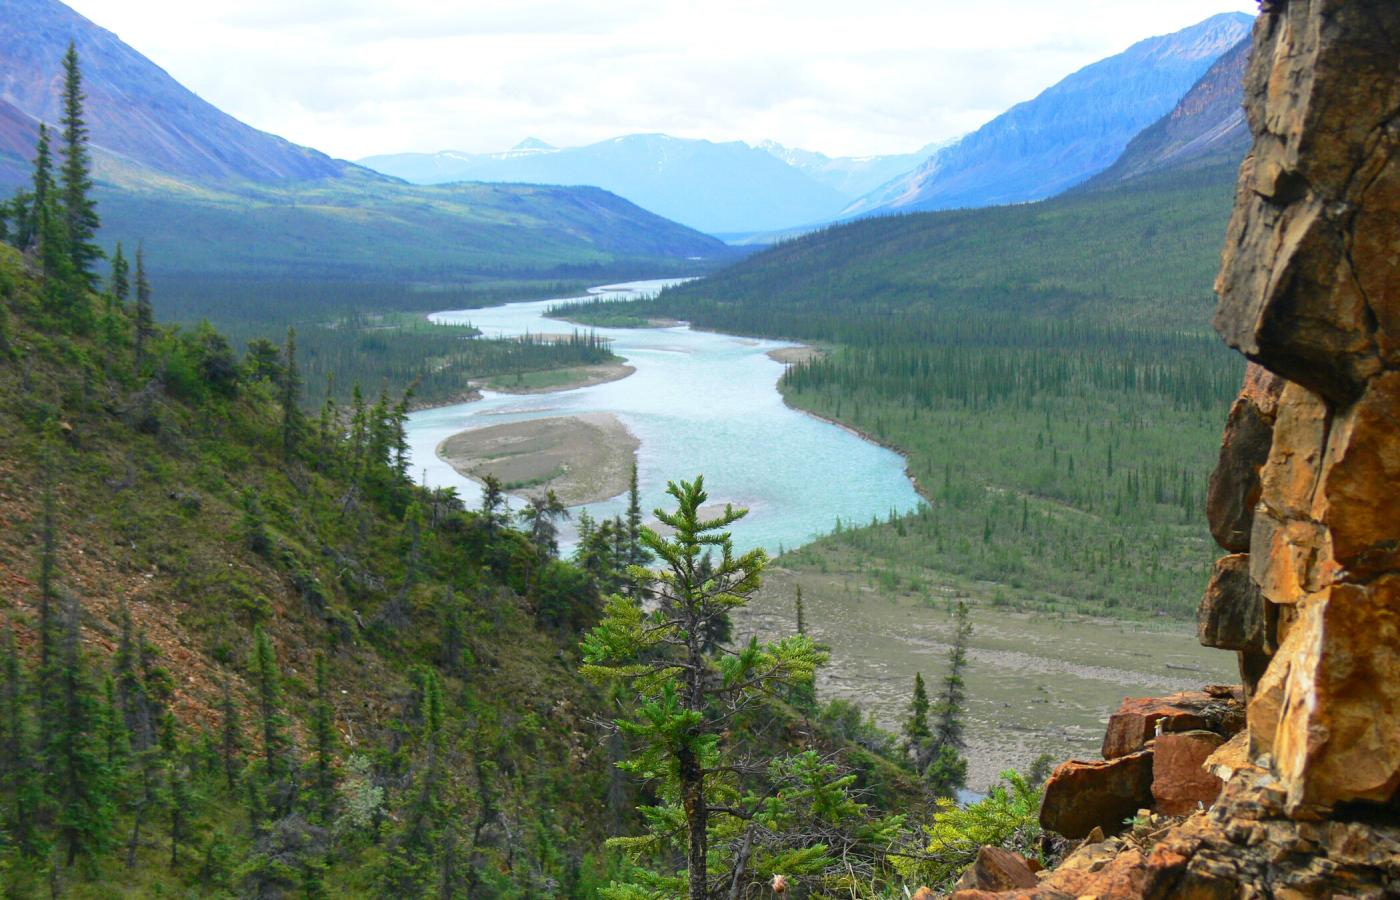 The Natla River in Canada's Northwest Territories is a must for any adventure paddler